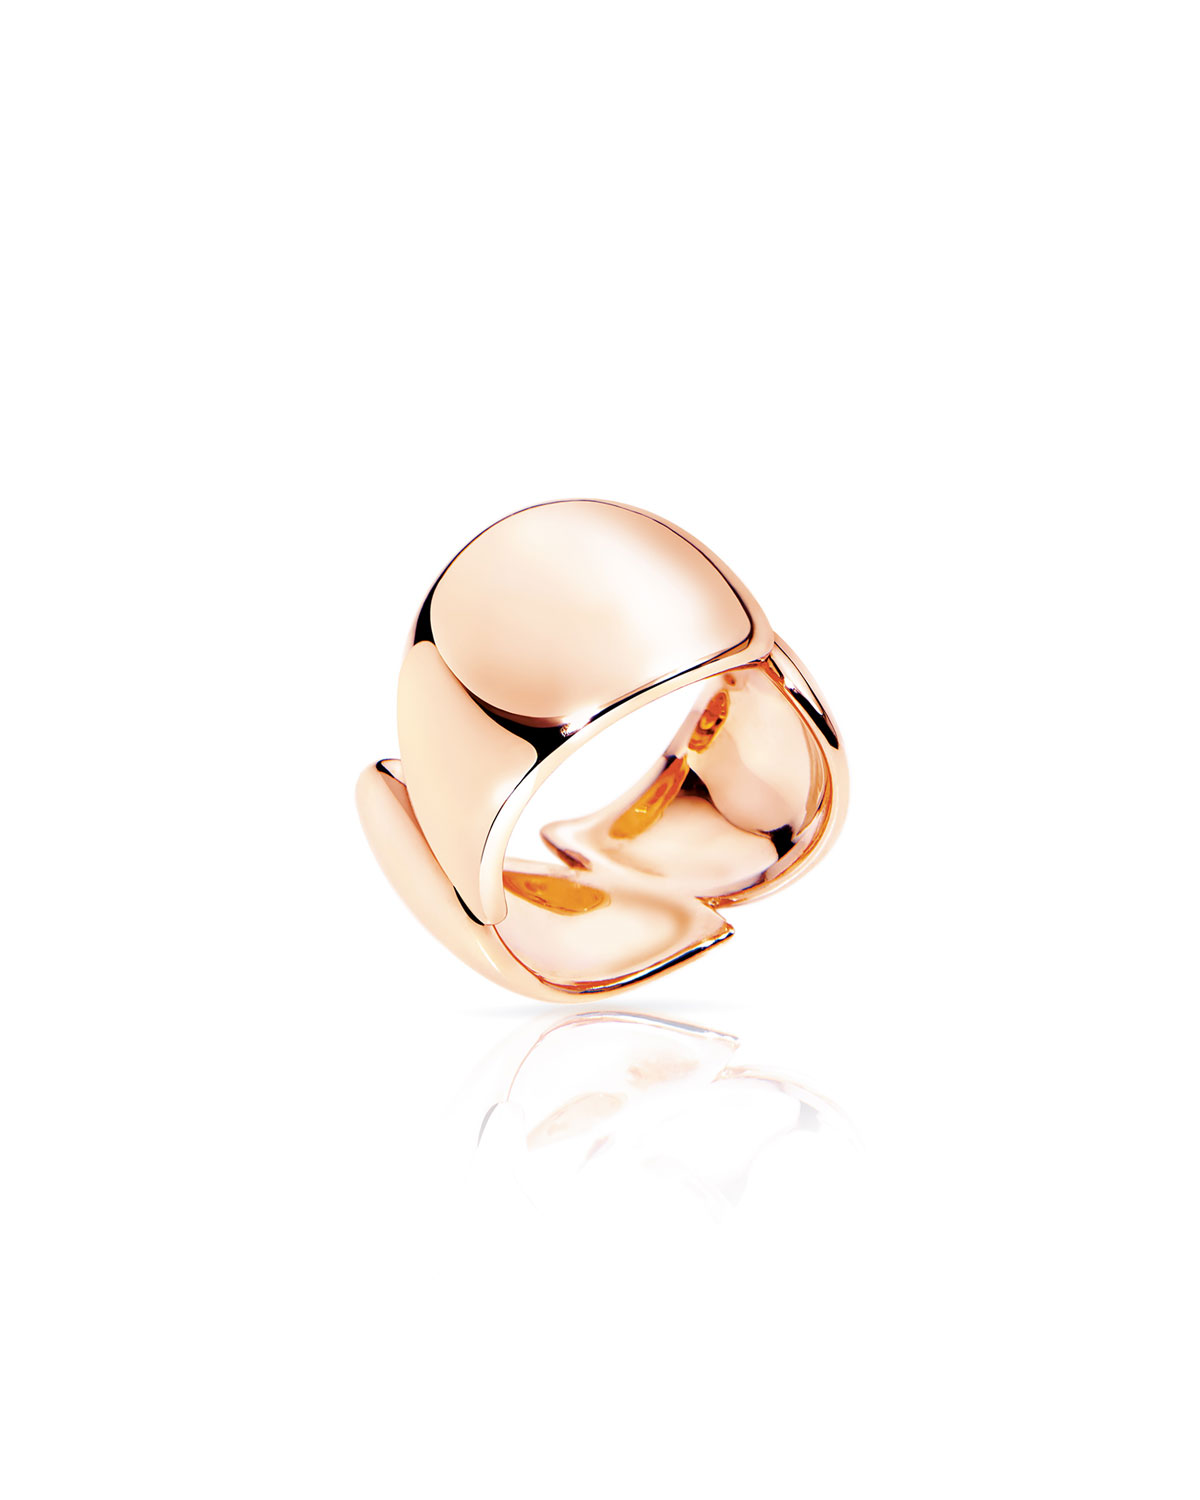 Signature Wave ring from Tamara Comolli. Polished 18-karat rose gold hardware. Three drop silhouettes form band. Approx. 0.5\